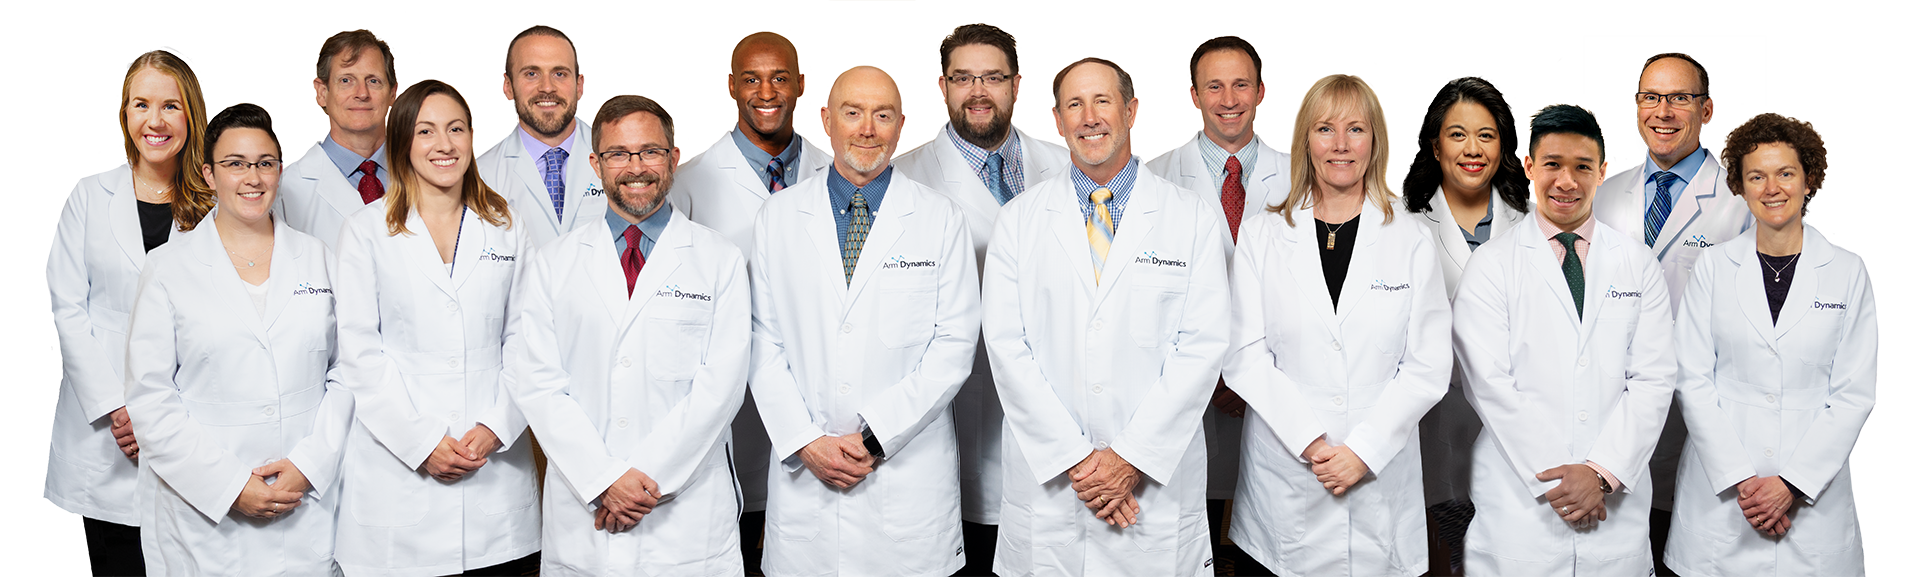 2020 Clinical Team Picture